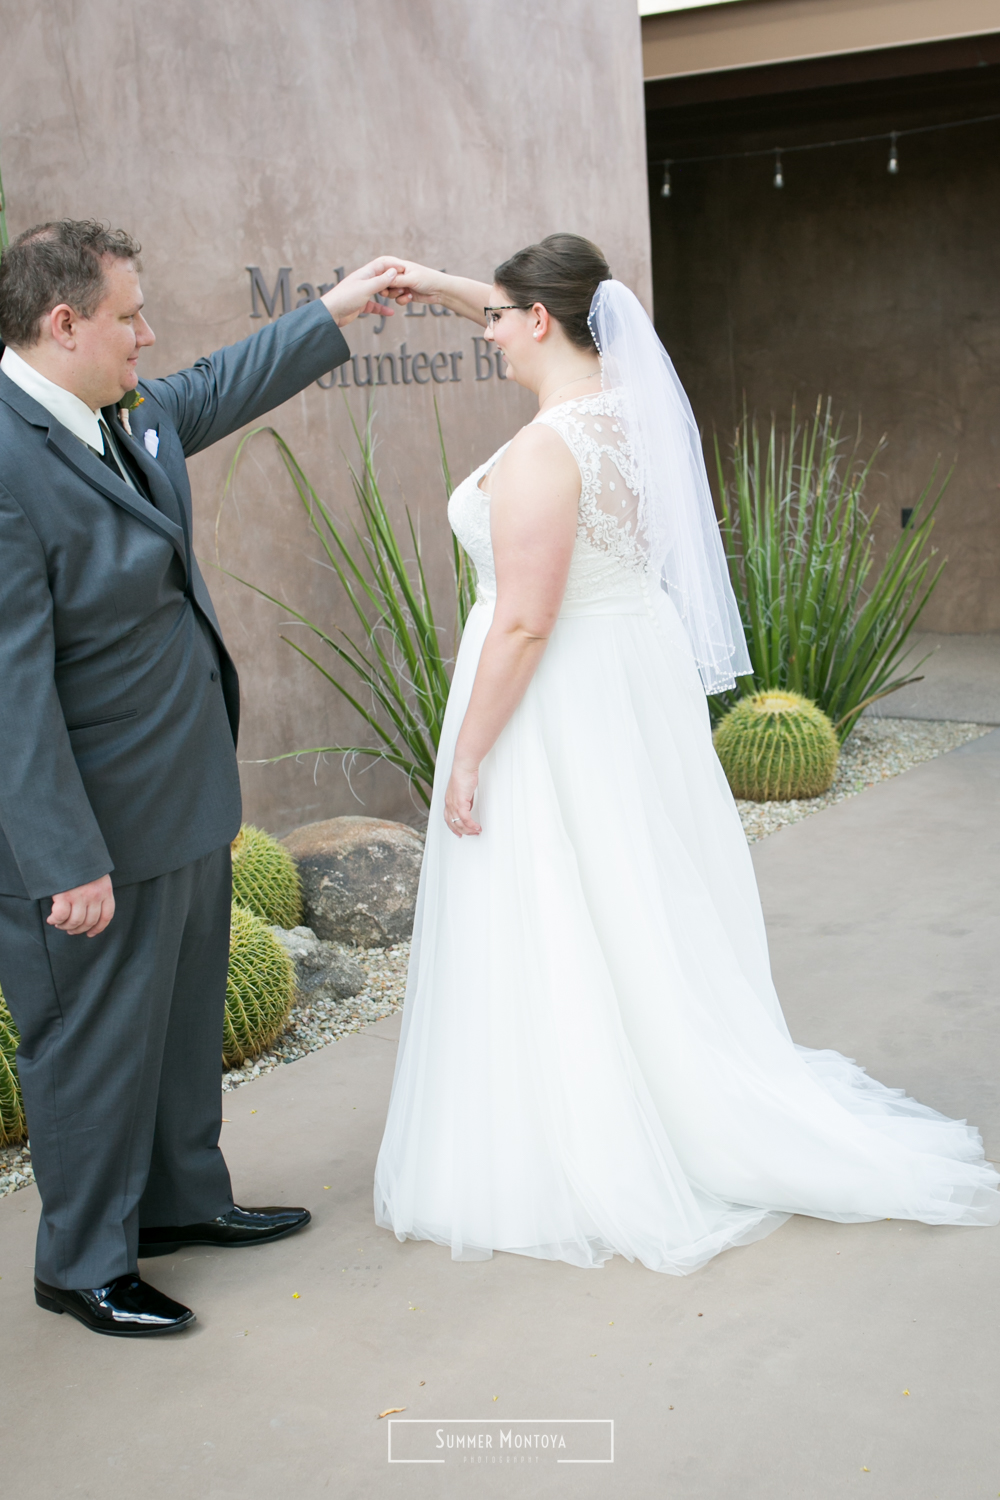 Groom twirling his bride at the Desert Botanical Gardens